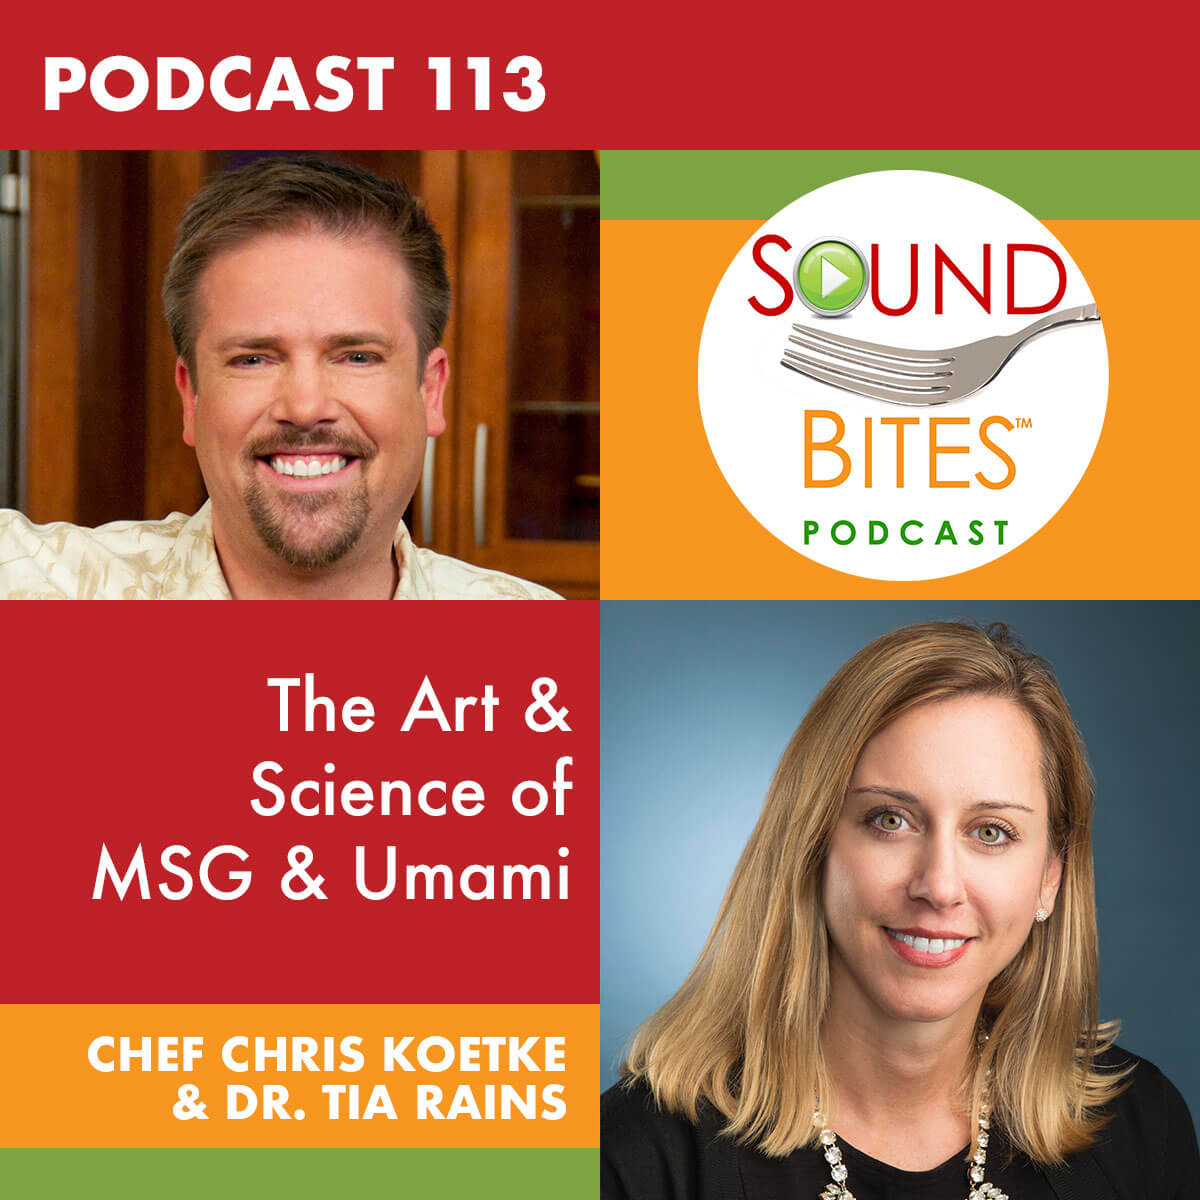 Podcast 113: The Art and Science of MSG and Umami — Chef Chris Koetke and Dr. Tia Rains